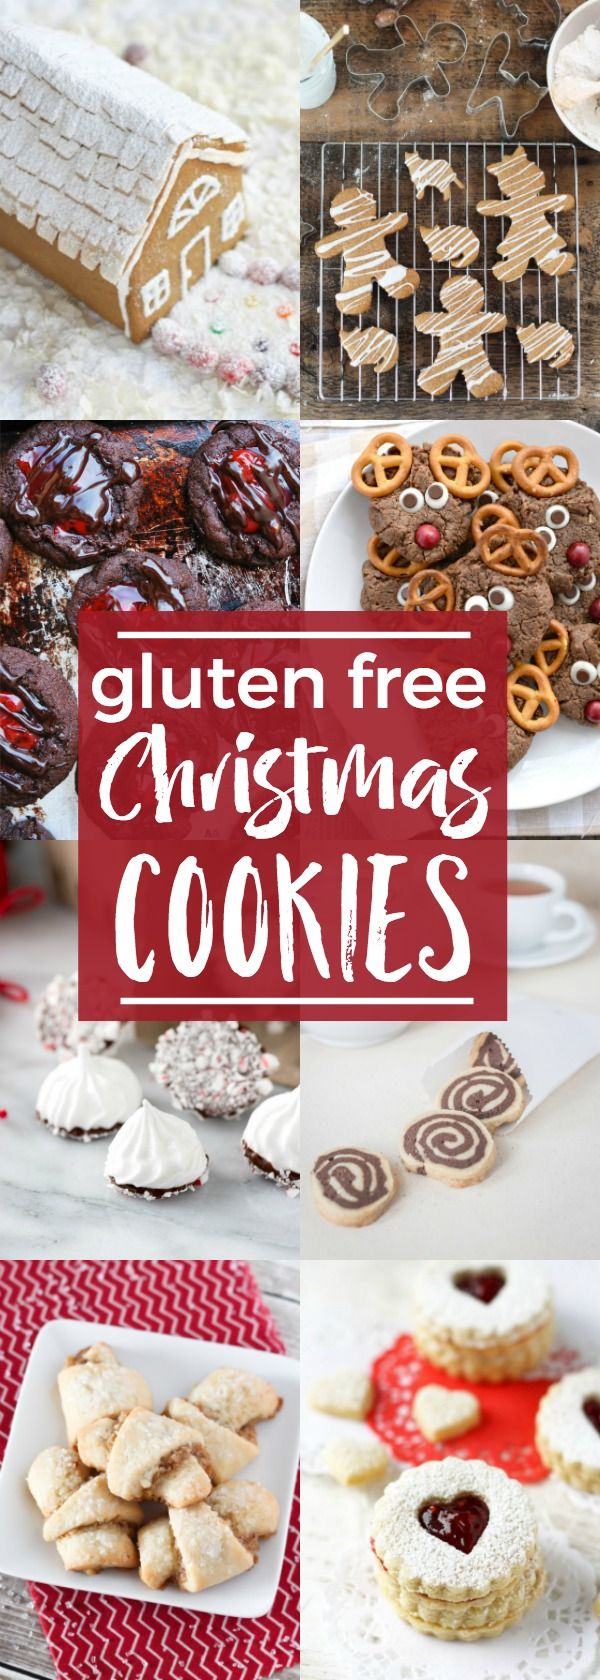 A complete list of gluten free Christmas Cookies - all the classics are here! @What The Fork Food Blog | whattheforkfoodbl... | holiday baking | gluten free cookies | homemade cookies | gluten free cookie recipes | gluten free desserts | how to make glute